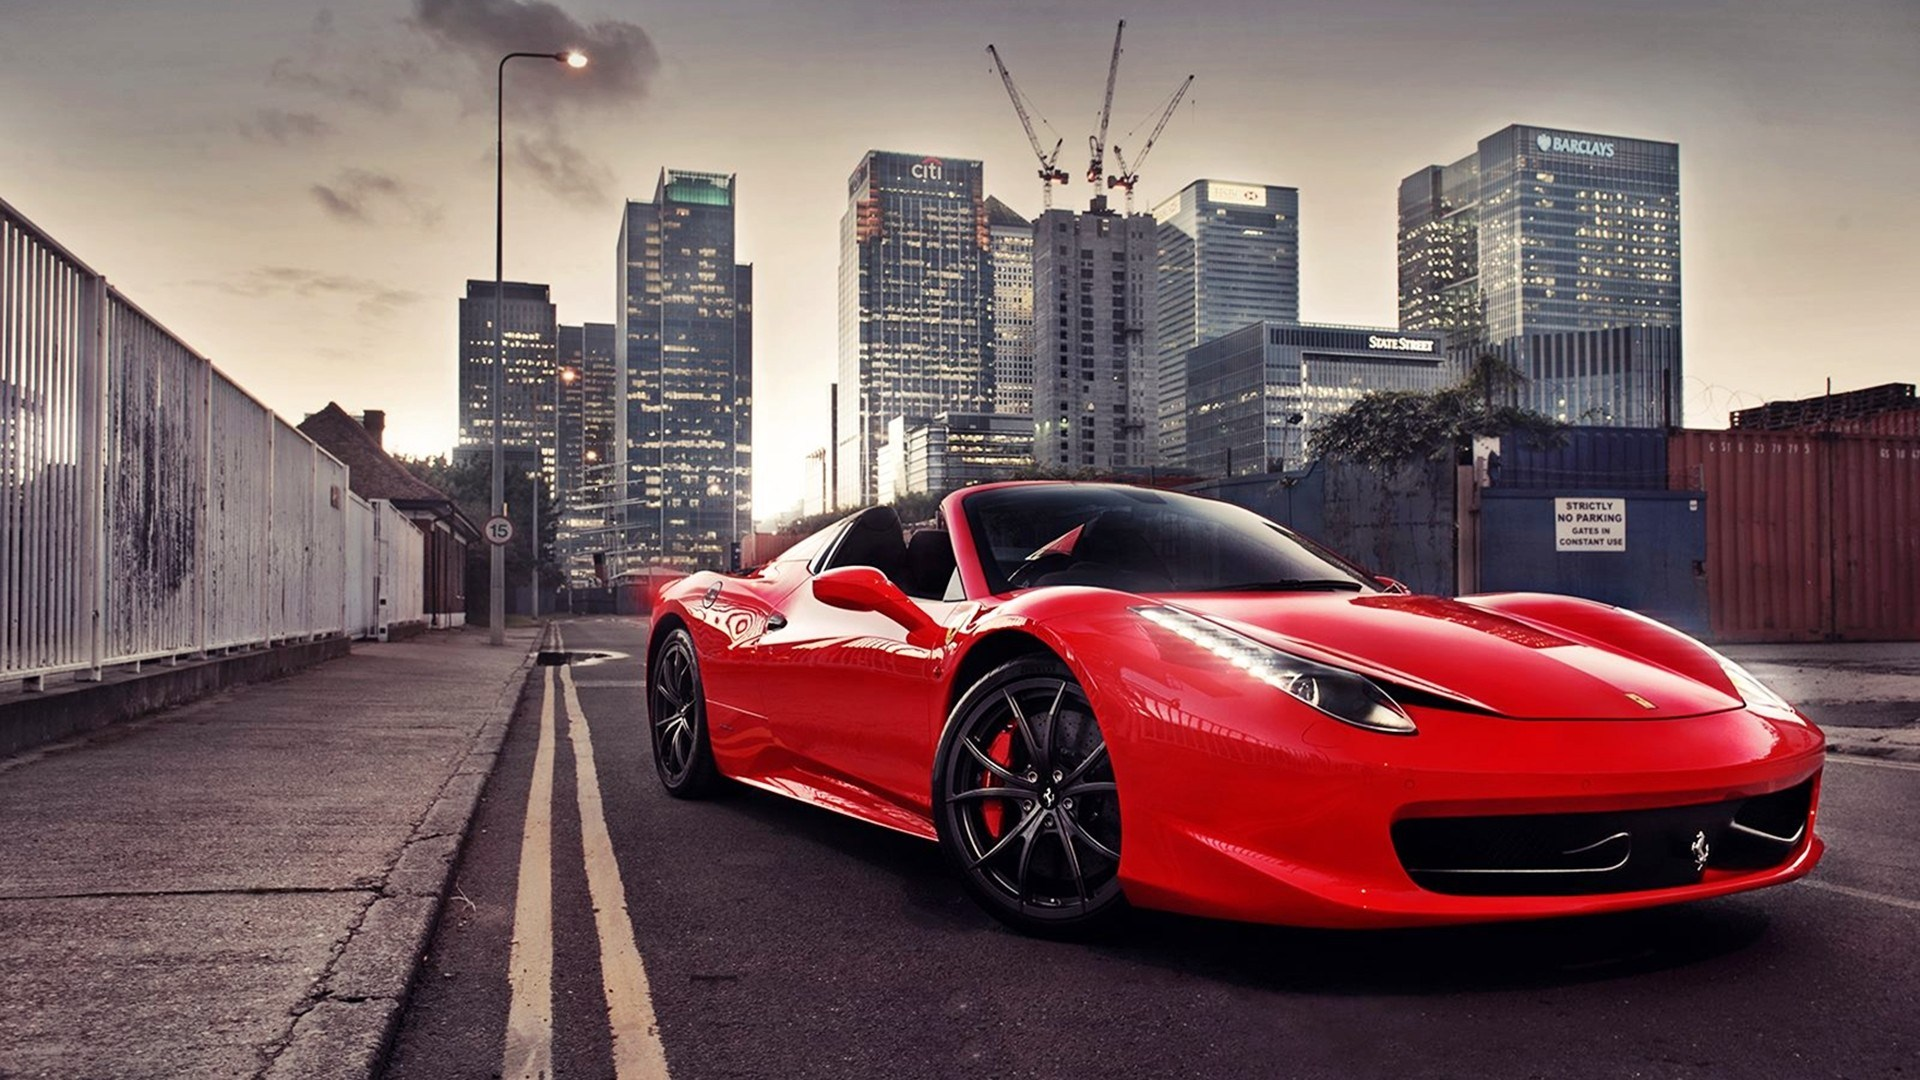 Ferrari 458 Images Wallpapers Group (97+)